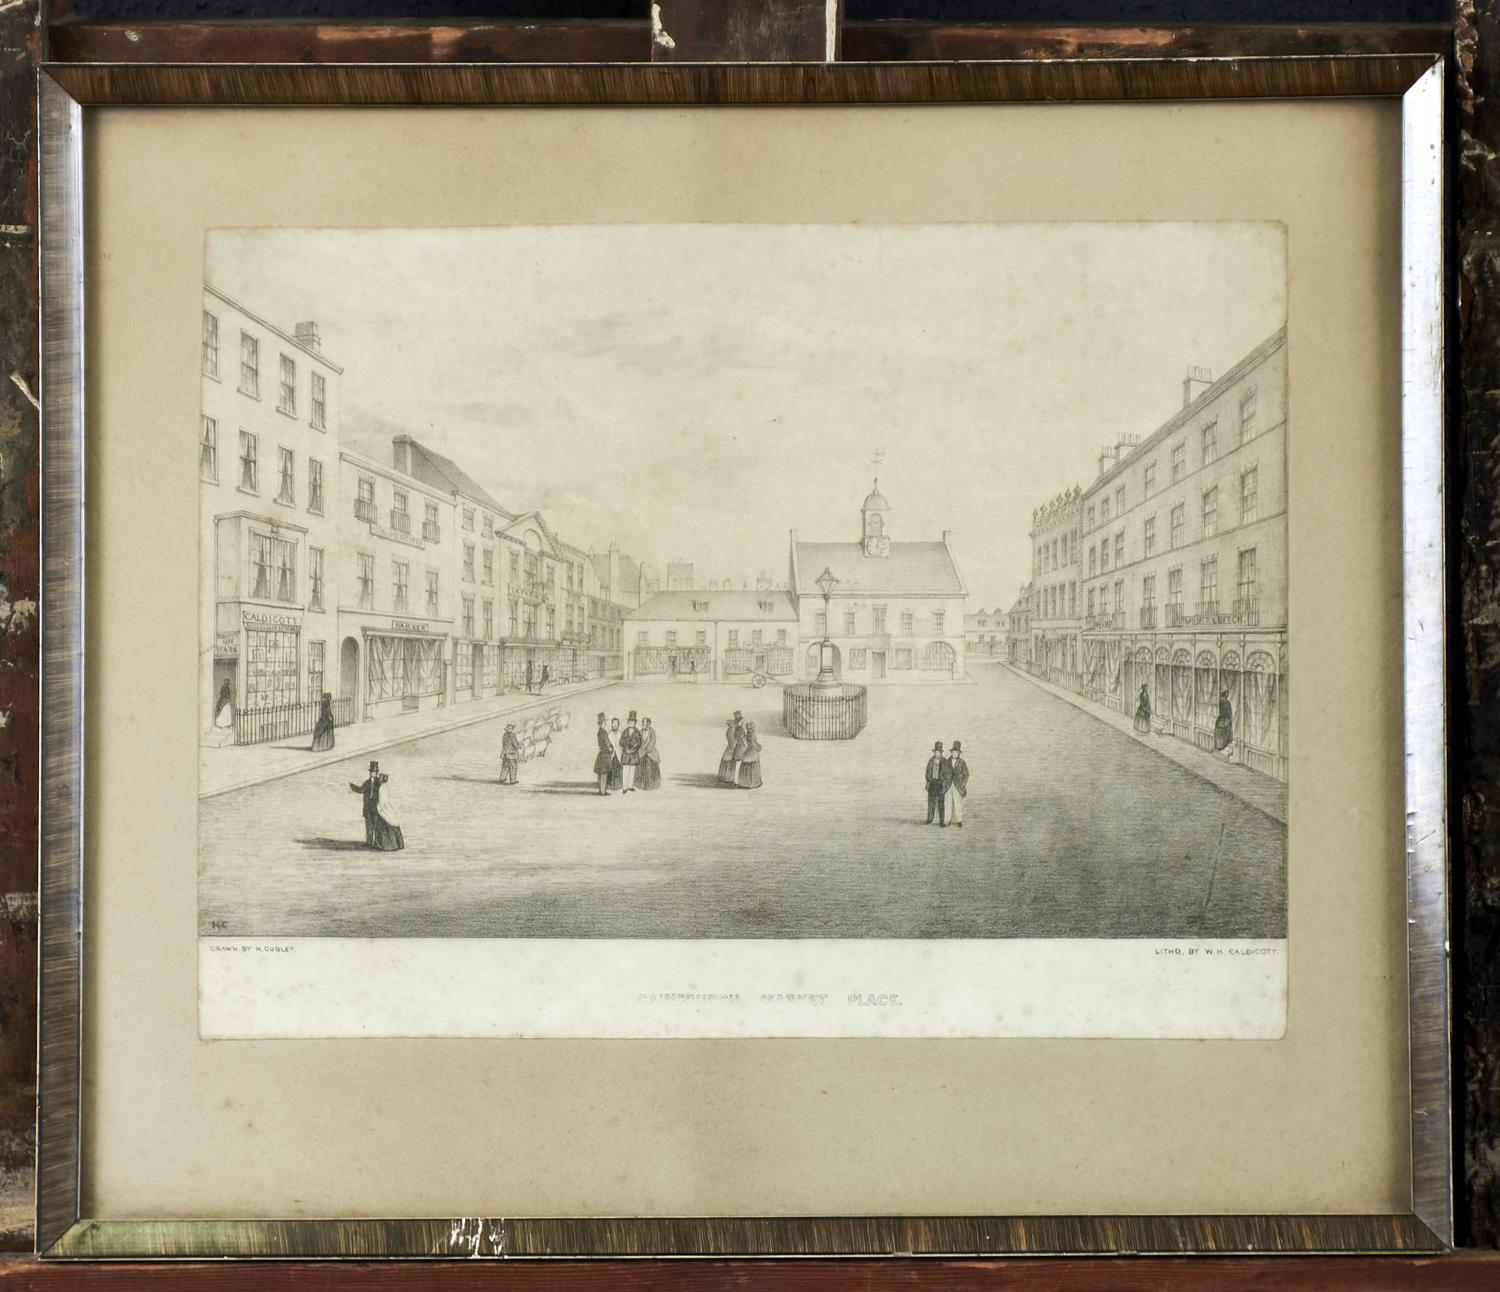 MISCELLANEOUS 19TH C AND LATER PICTURES AND PRINTS, MANY OF GAINSBOROUGH (LINCOLNSHIRE) INTEREST - Image 2 of 2